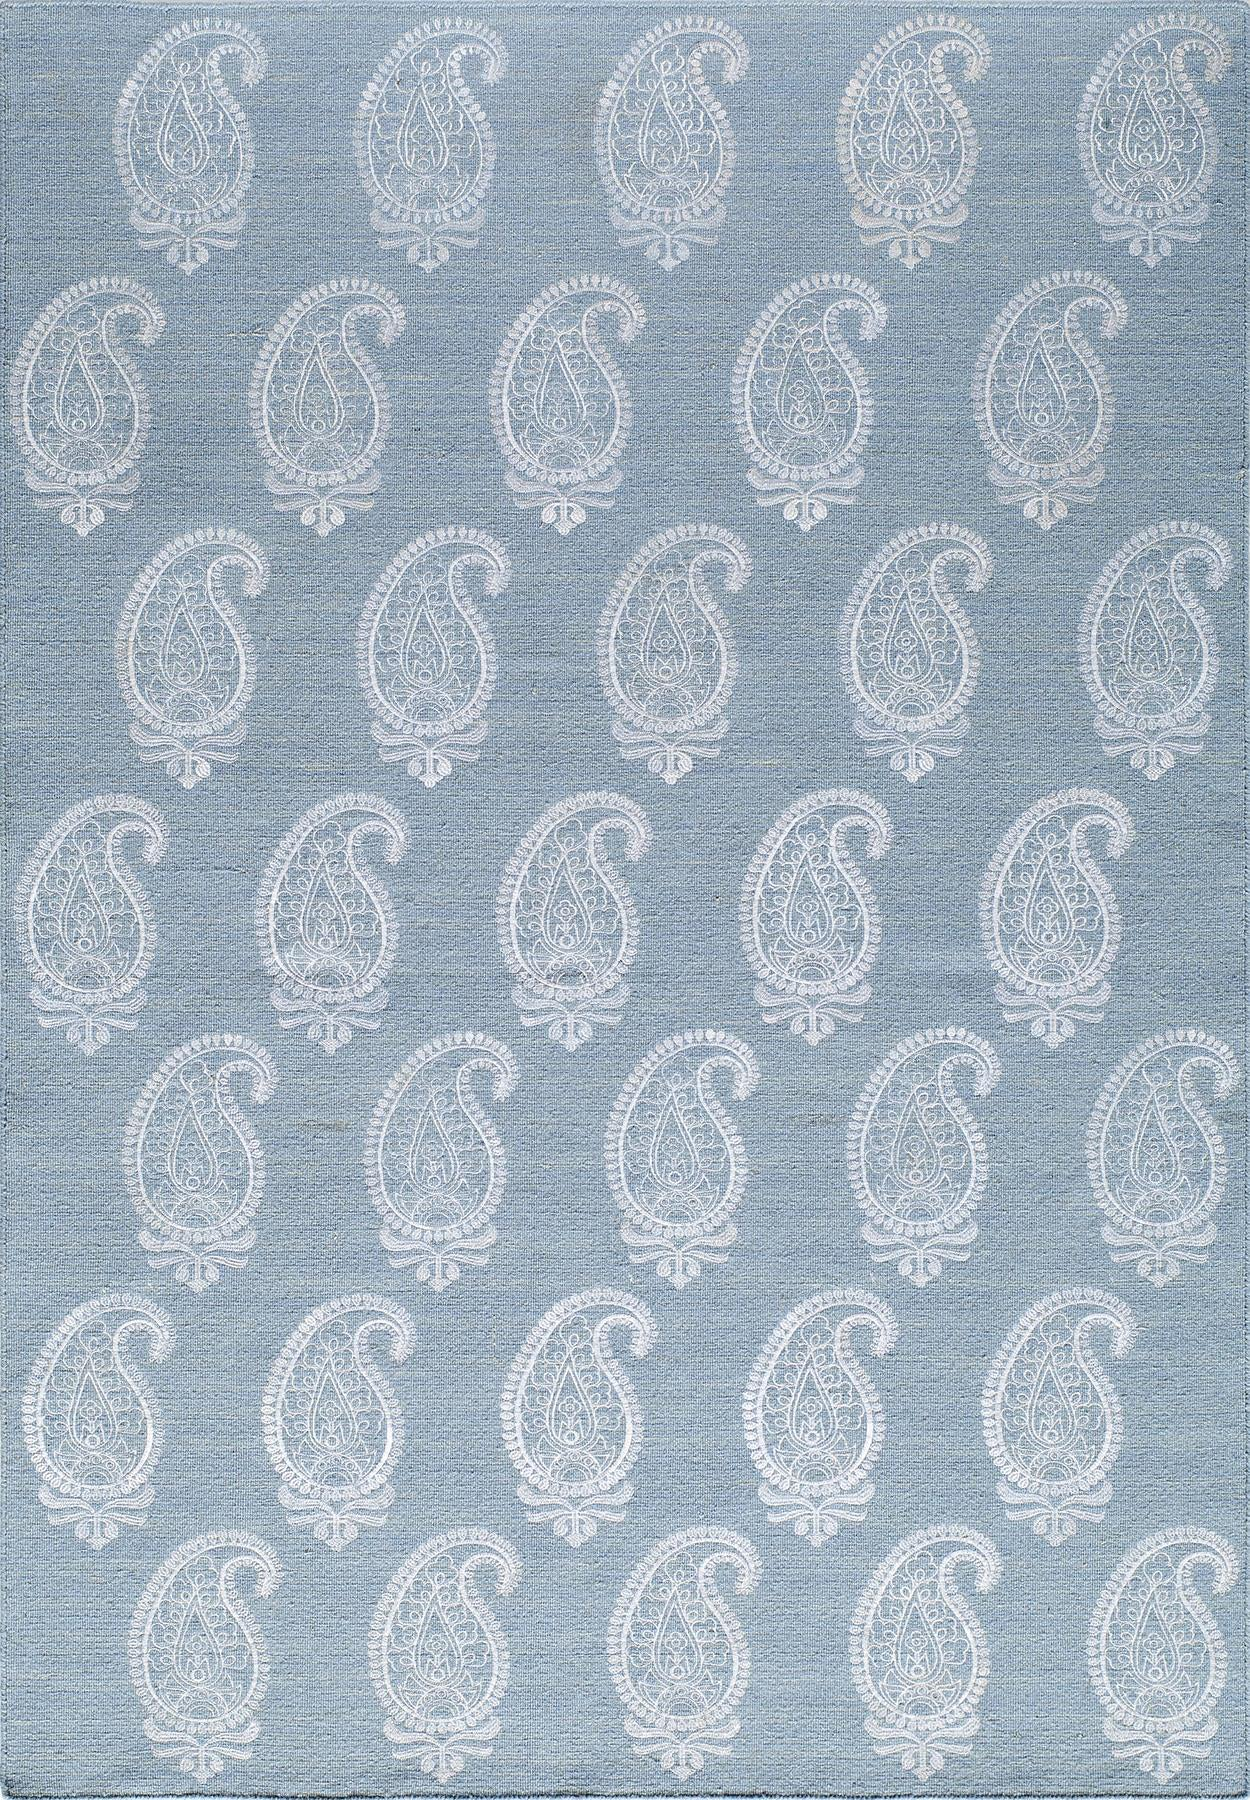 Momeni Lace Embroided LAC-1 Soft Blue Area Rug main image